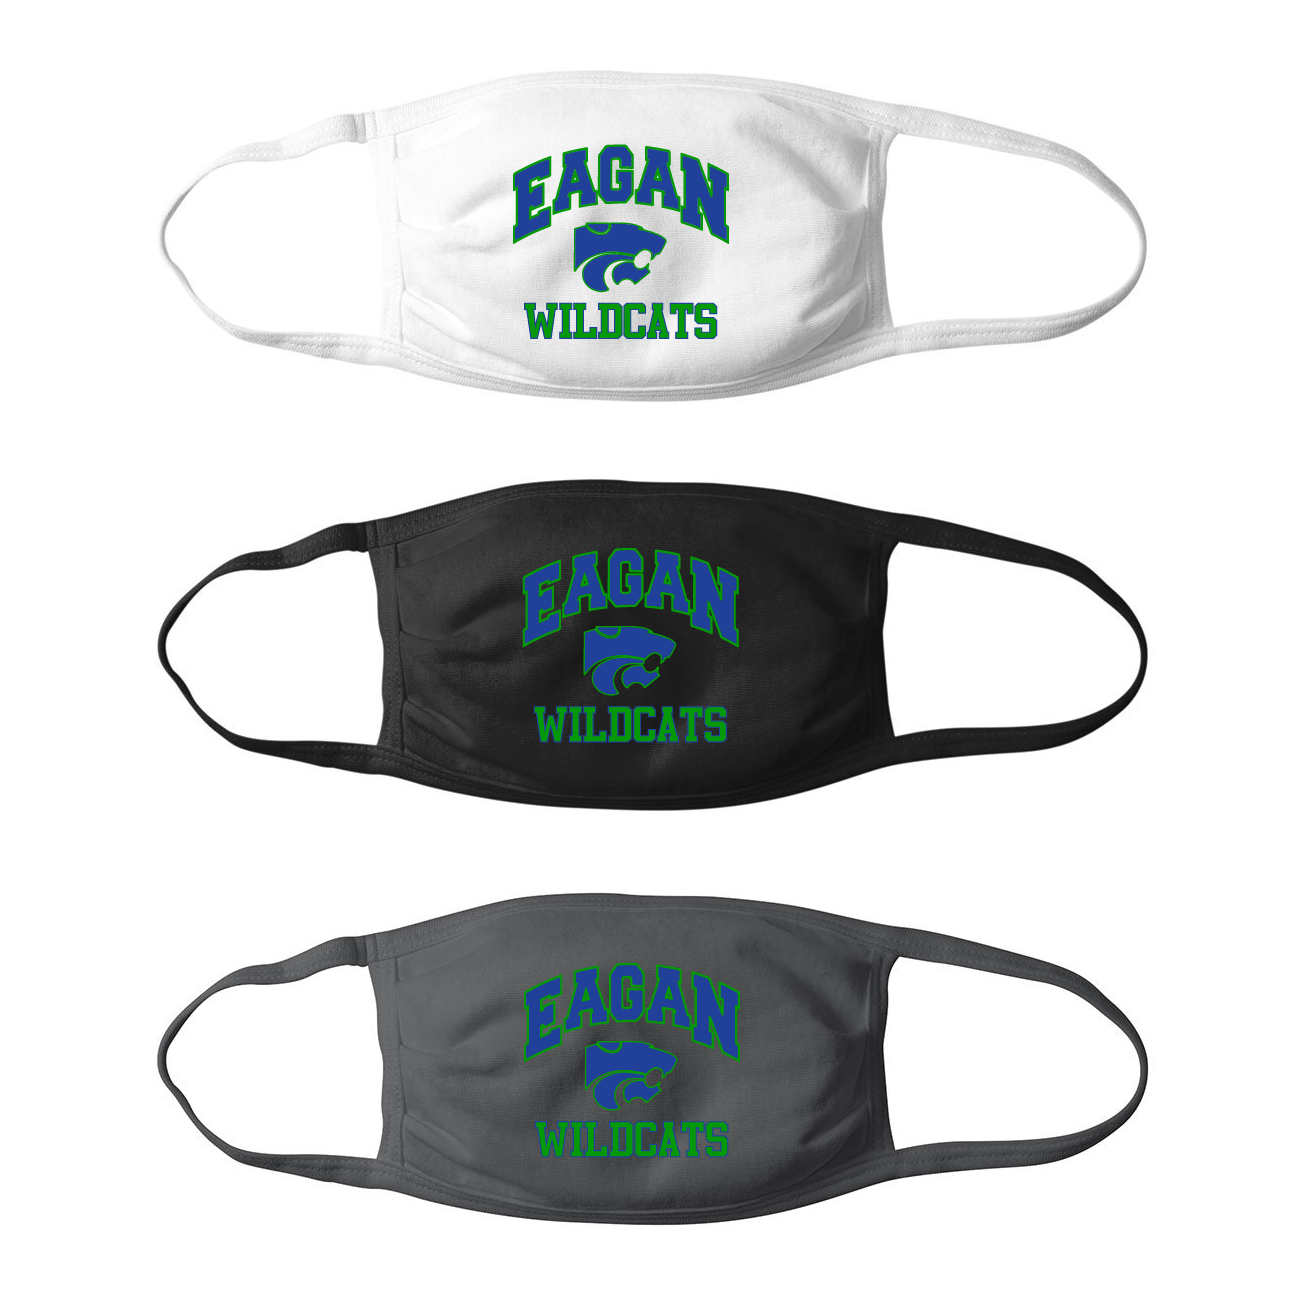 Eagan Wildcats Mask - Adult